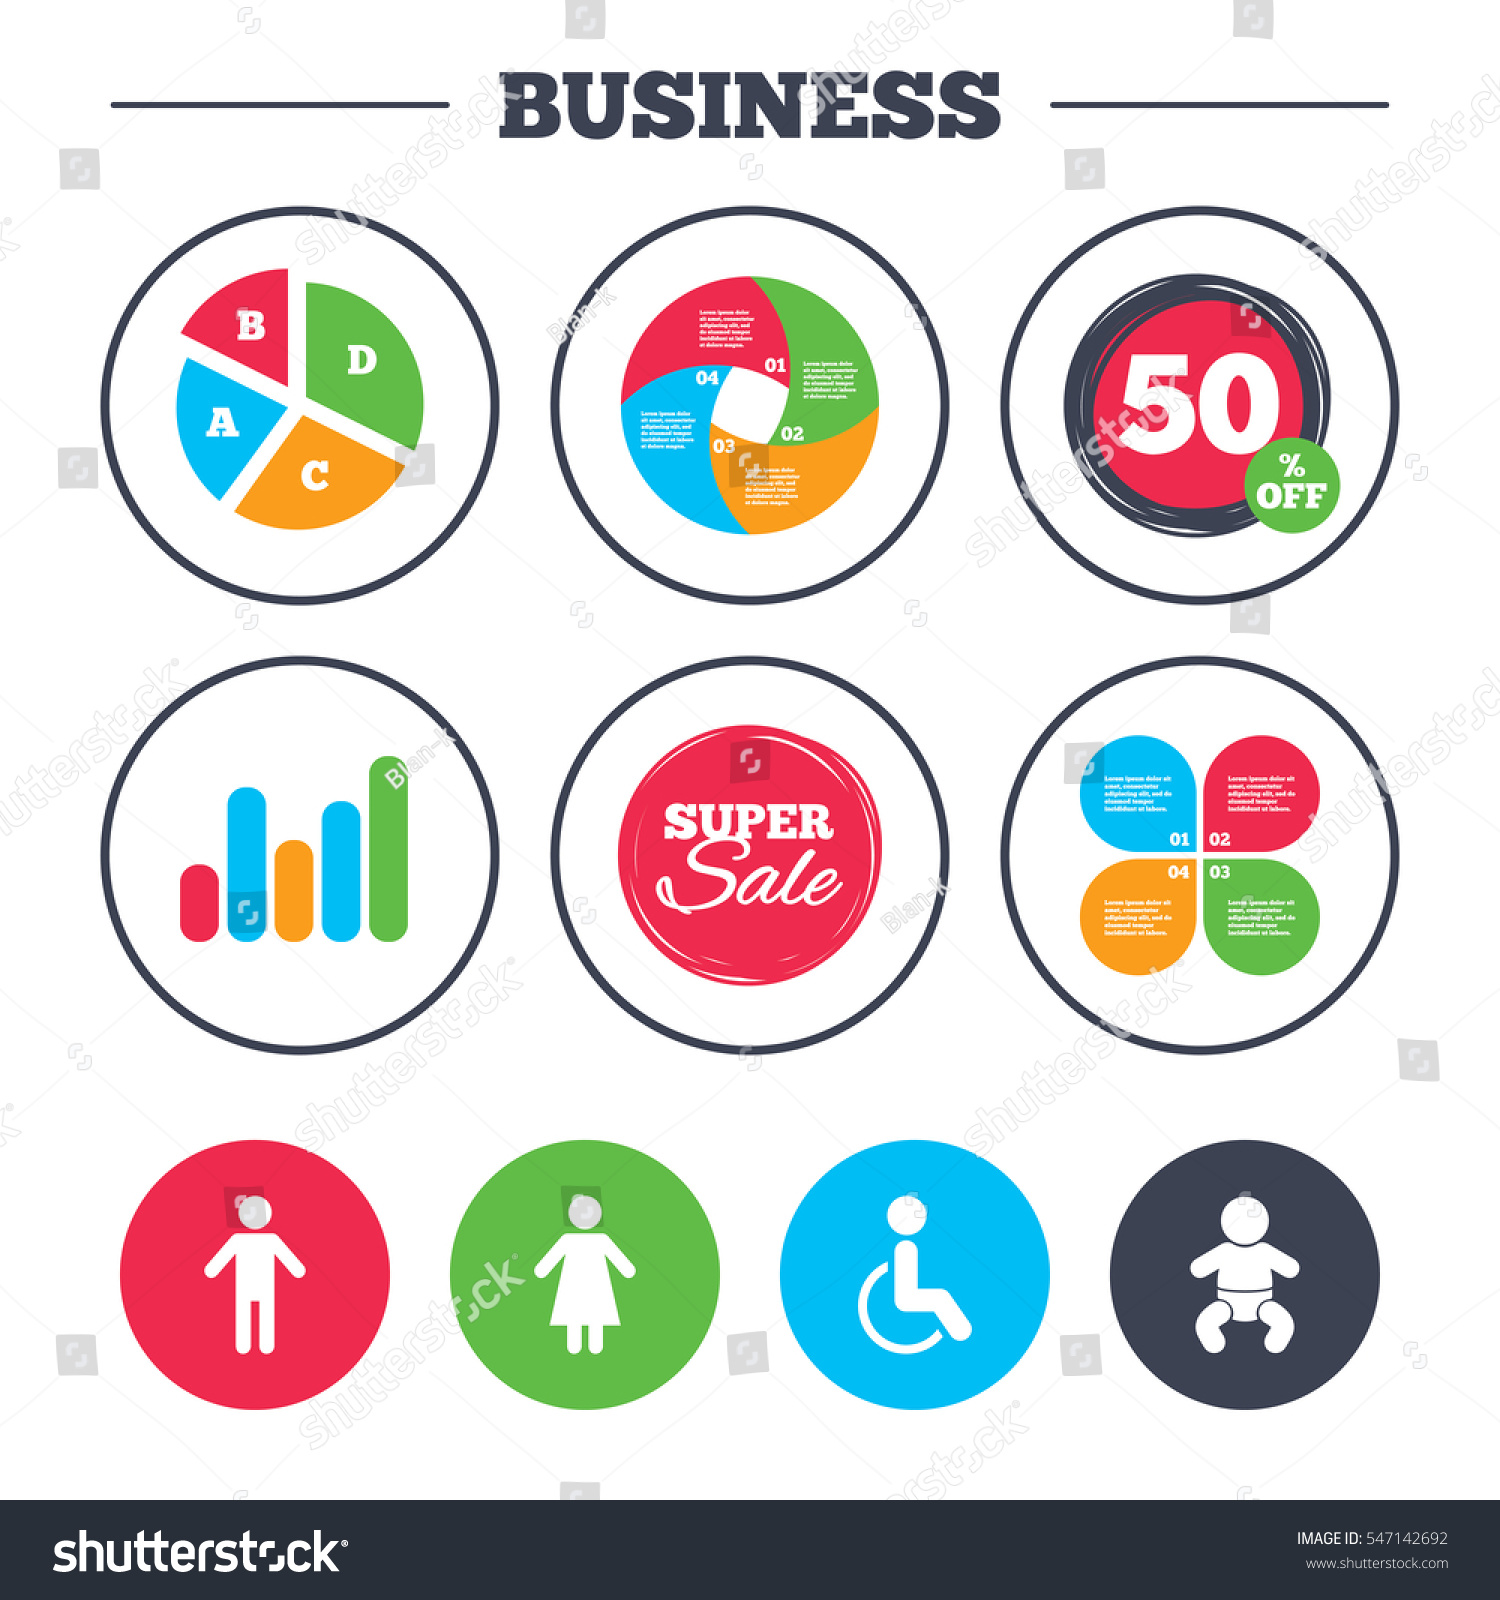 Business pie chart growth graph wc stock vector 547142692 shutterstock business pie chart growth graph wc toilet icons human male or female signs geenschuldenfo Choice Image